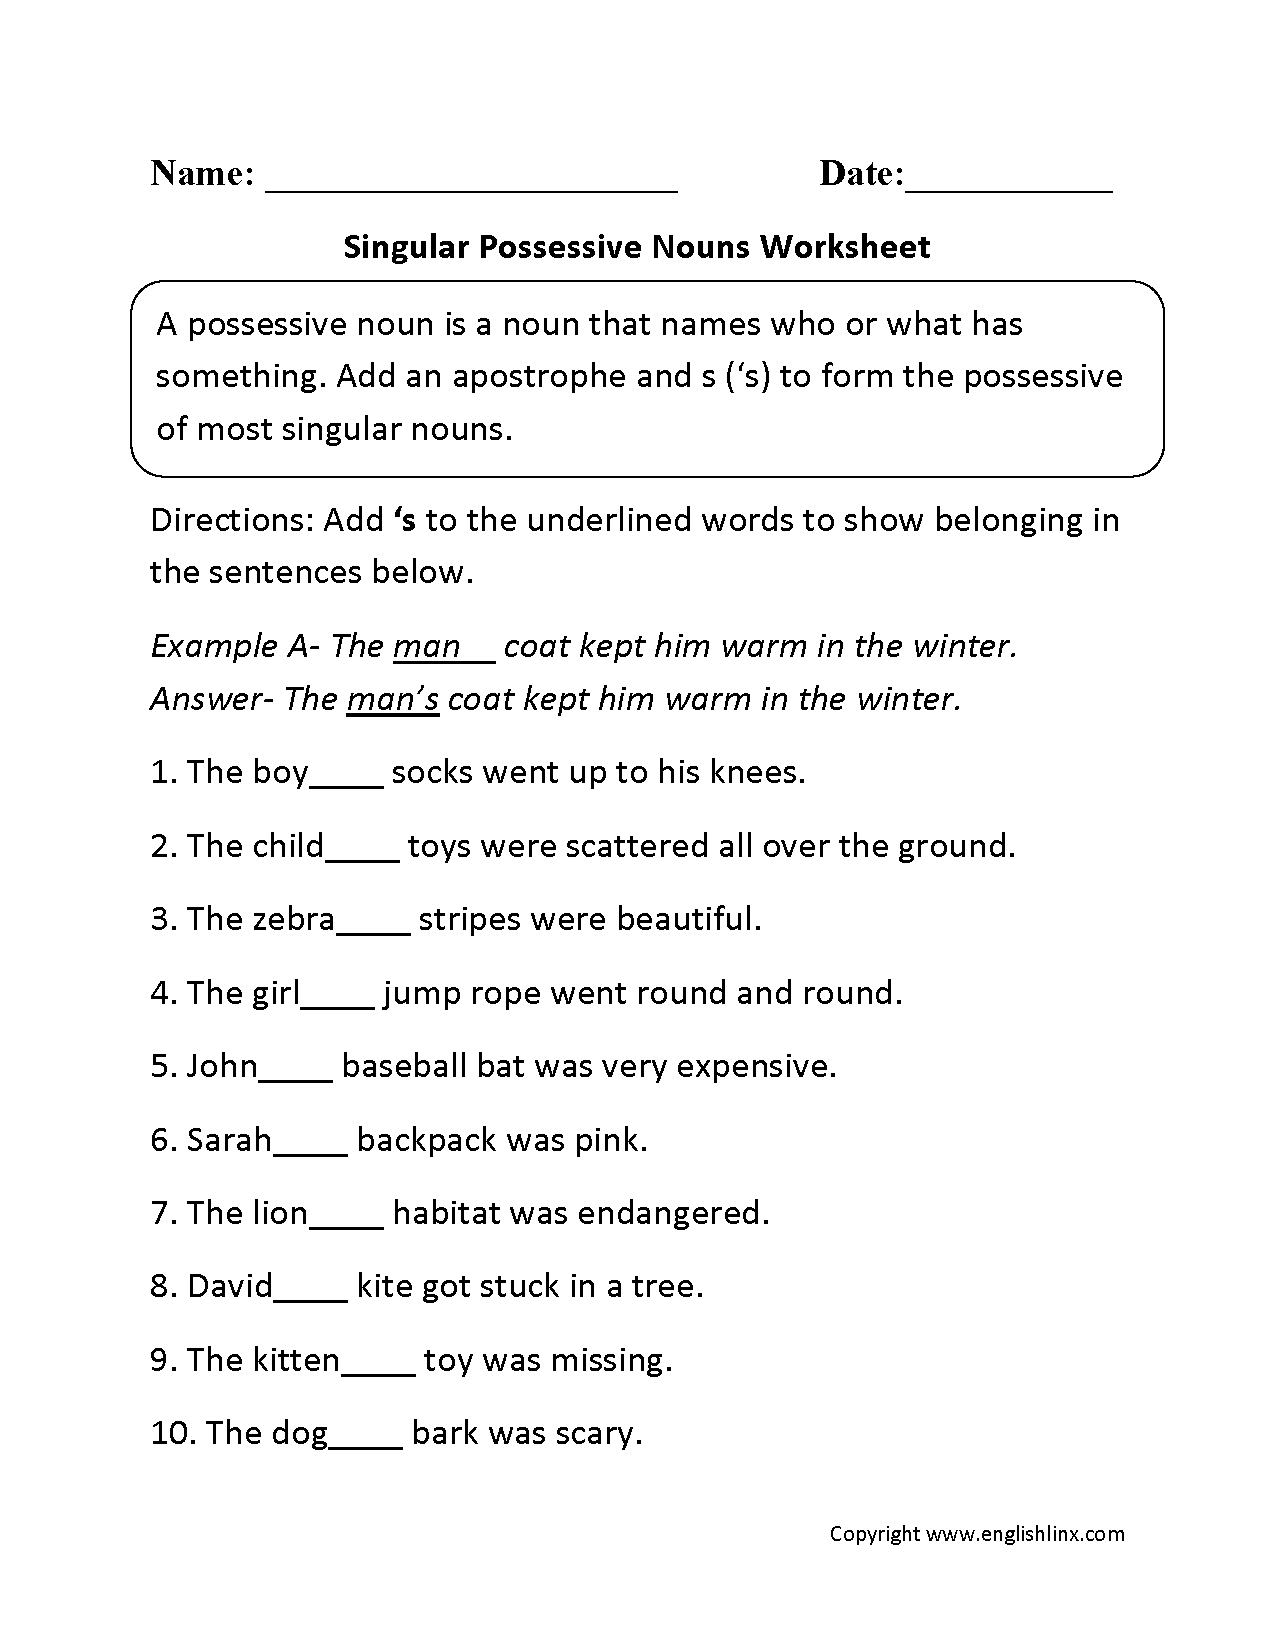 Worksheets Possessive Nouns Worksheet nouns worksheets possessive worksheets